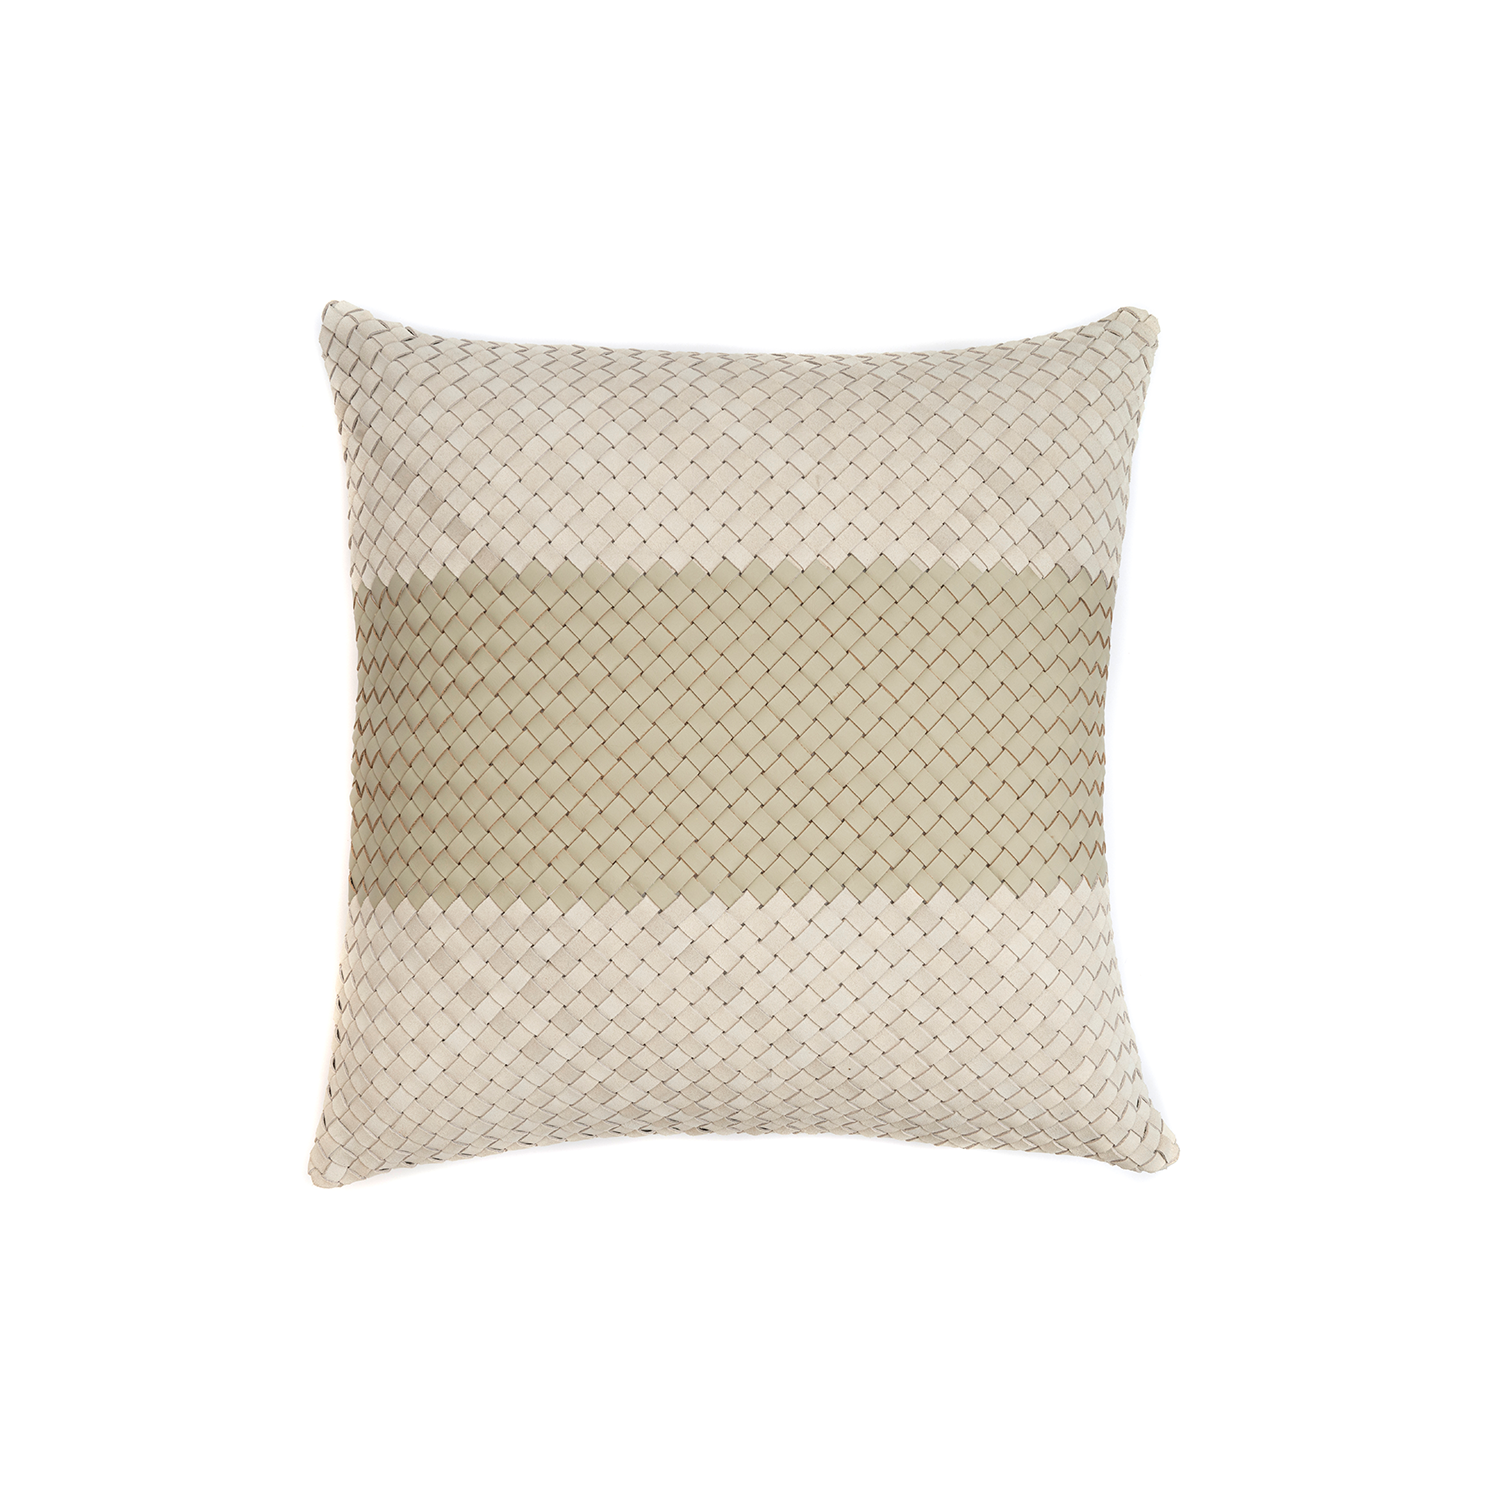 Mosaico Faixa Bicolor Woven Leather Cushion Square - The Mosaico Faixa Bicolor Woven Leather Cushion is designed to complement an ambient with a natural and sophisticated feeling. This cushion style is available in pleated leather or pleated suede leather. Elisa Atheniense woven handmade leather cushions are specially manufactured in Brazil using an exclusive treated leather that brings the soft feel touch to every single piece.   The front panel is handwoven in leather and the back panel is 100% Pes, made in Brazil.  The inner cushion is available in Hollow Fibre and European Duck Feathers, made in the UK.  Mosaico Faixa Bicolor Woven Leather Cushion is available in multiple colours of leather and suede leather. Please enquire for colour combination, see colour chart for reference.   | Matter of Stuff